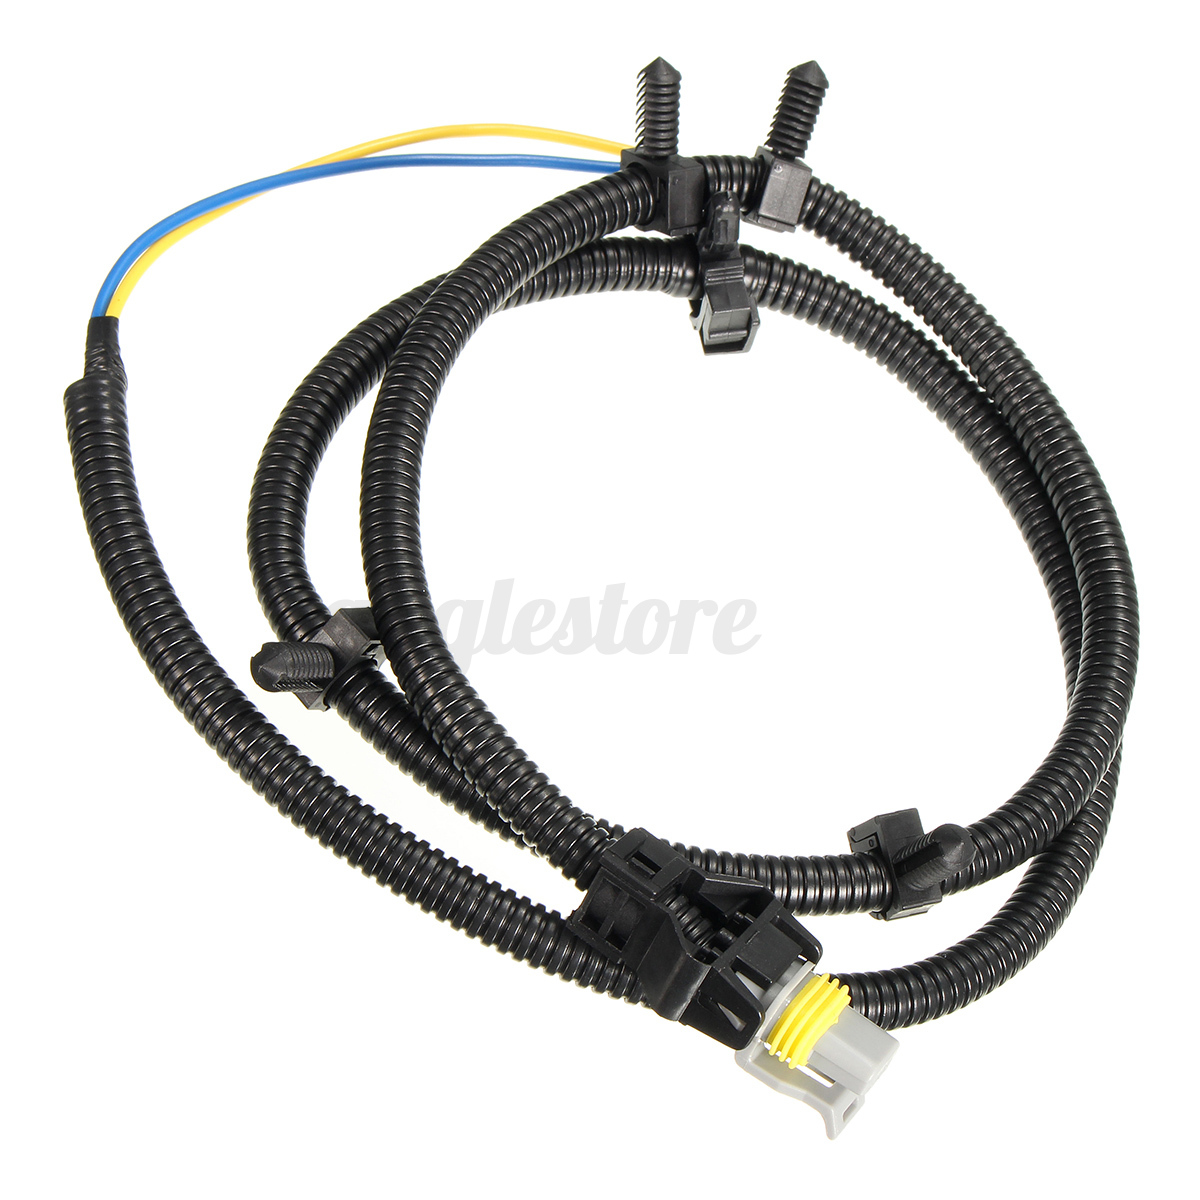 2x abs wheel speed sensor wire harness plug pigtail for buick chevy gm 10340314 ebay. Black Bedroom Furniture Sets. Home Design Ideas